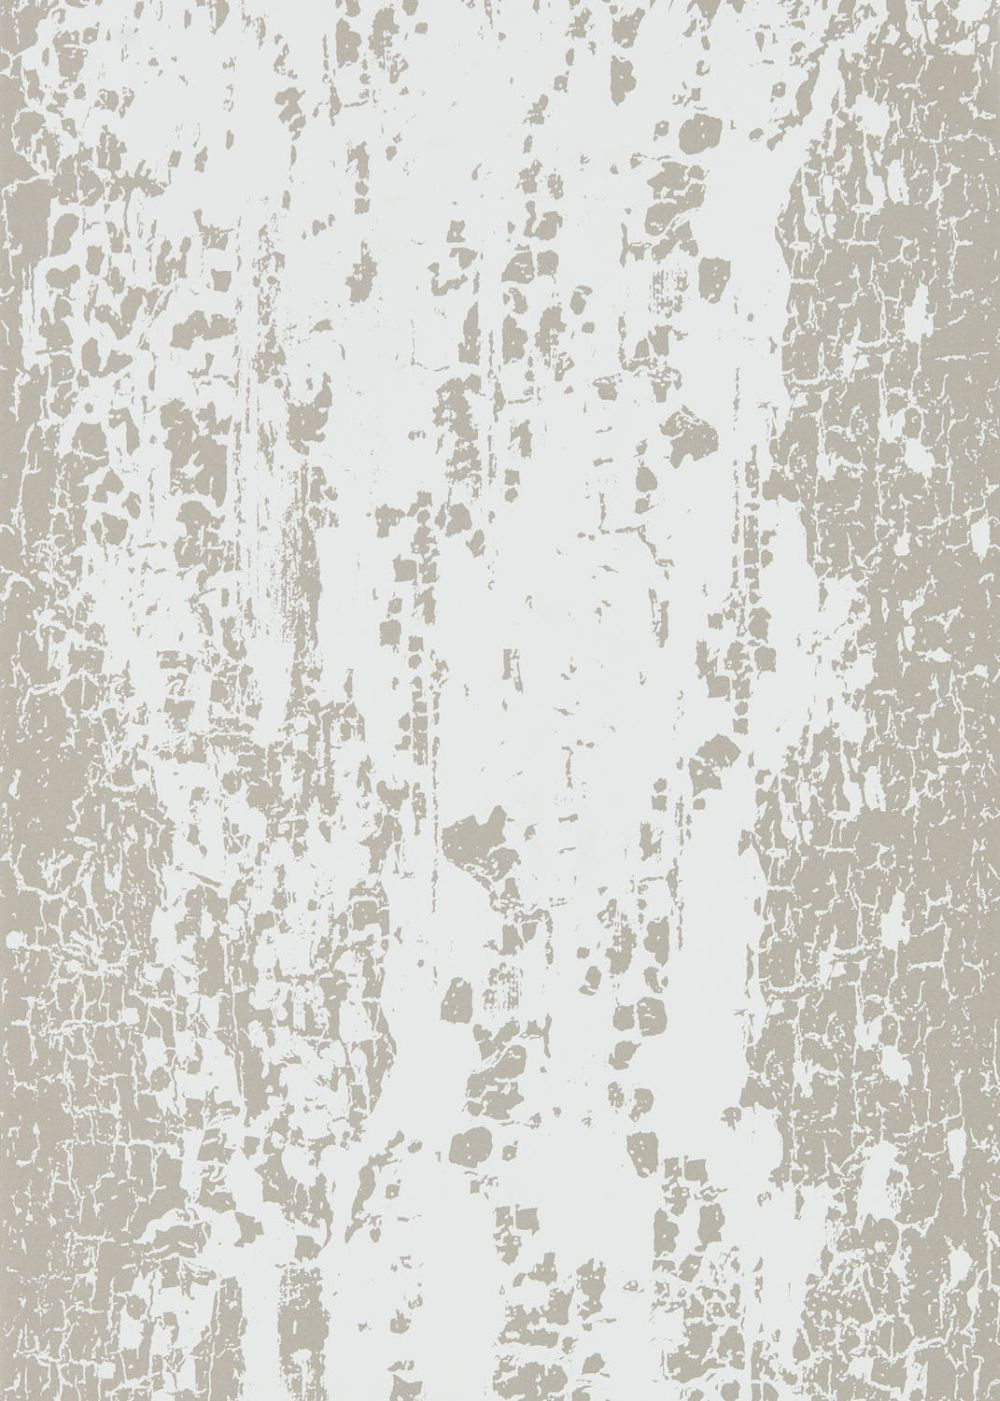 Eglomise Wallpaper - Ivory and Ice - by Harlequin